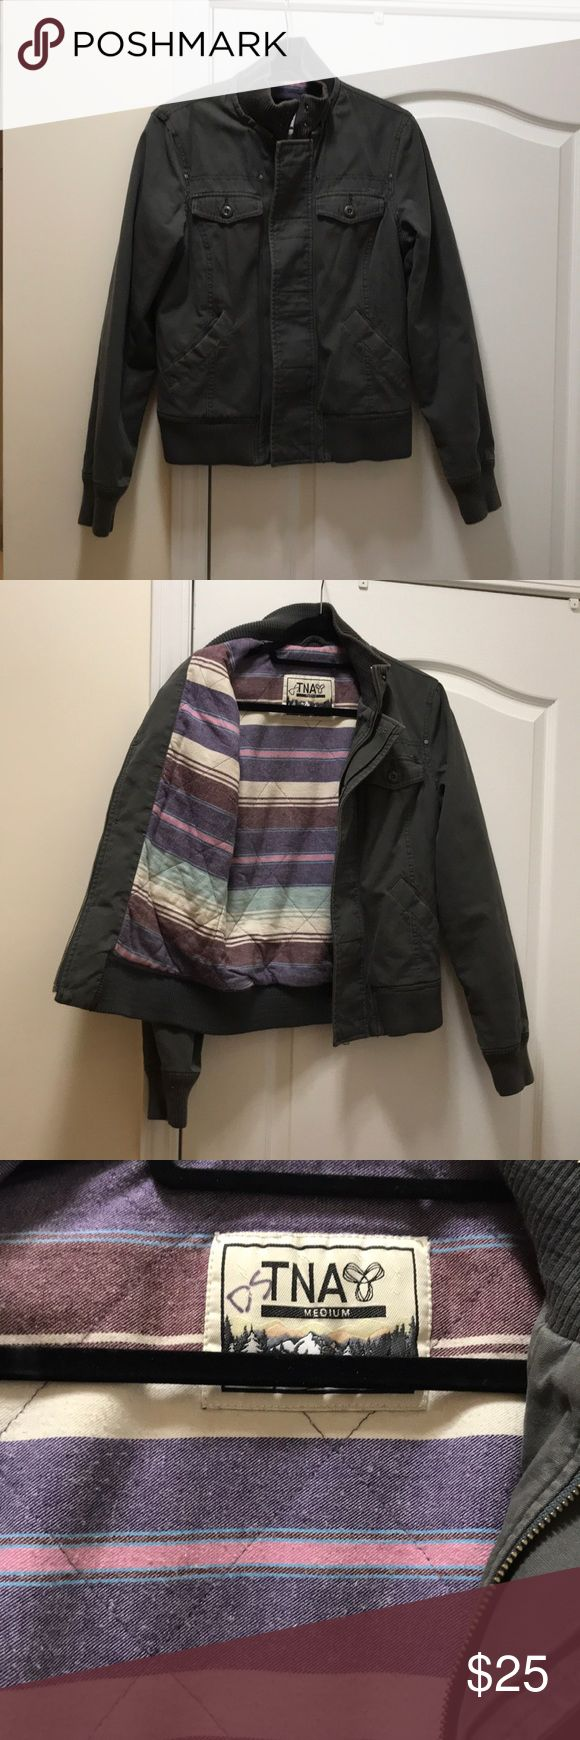 Grey Bomber Jacket size medium Grey bomber jacket TNA from Aritzia zipper and button front closure flannel lining inside. Super cute and easy to wear. Aritzia Jackets & Coats Utility Jackets